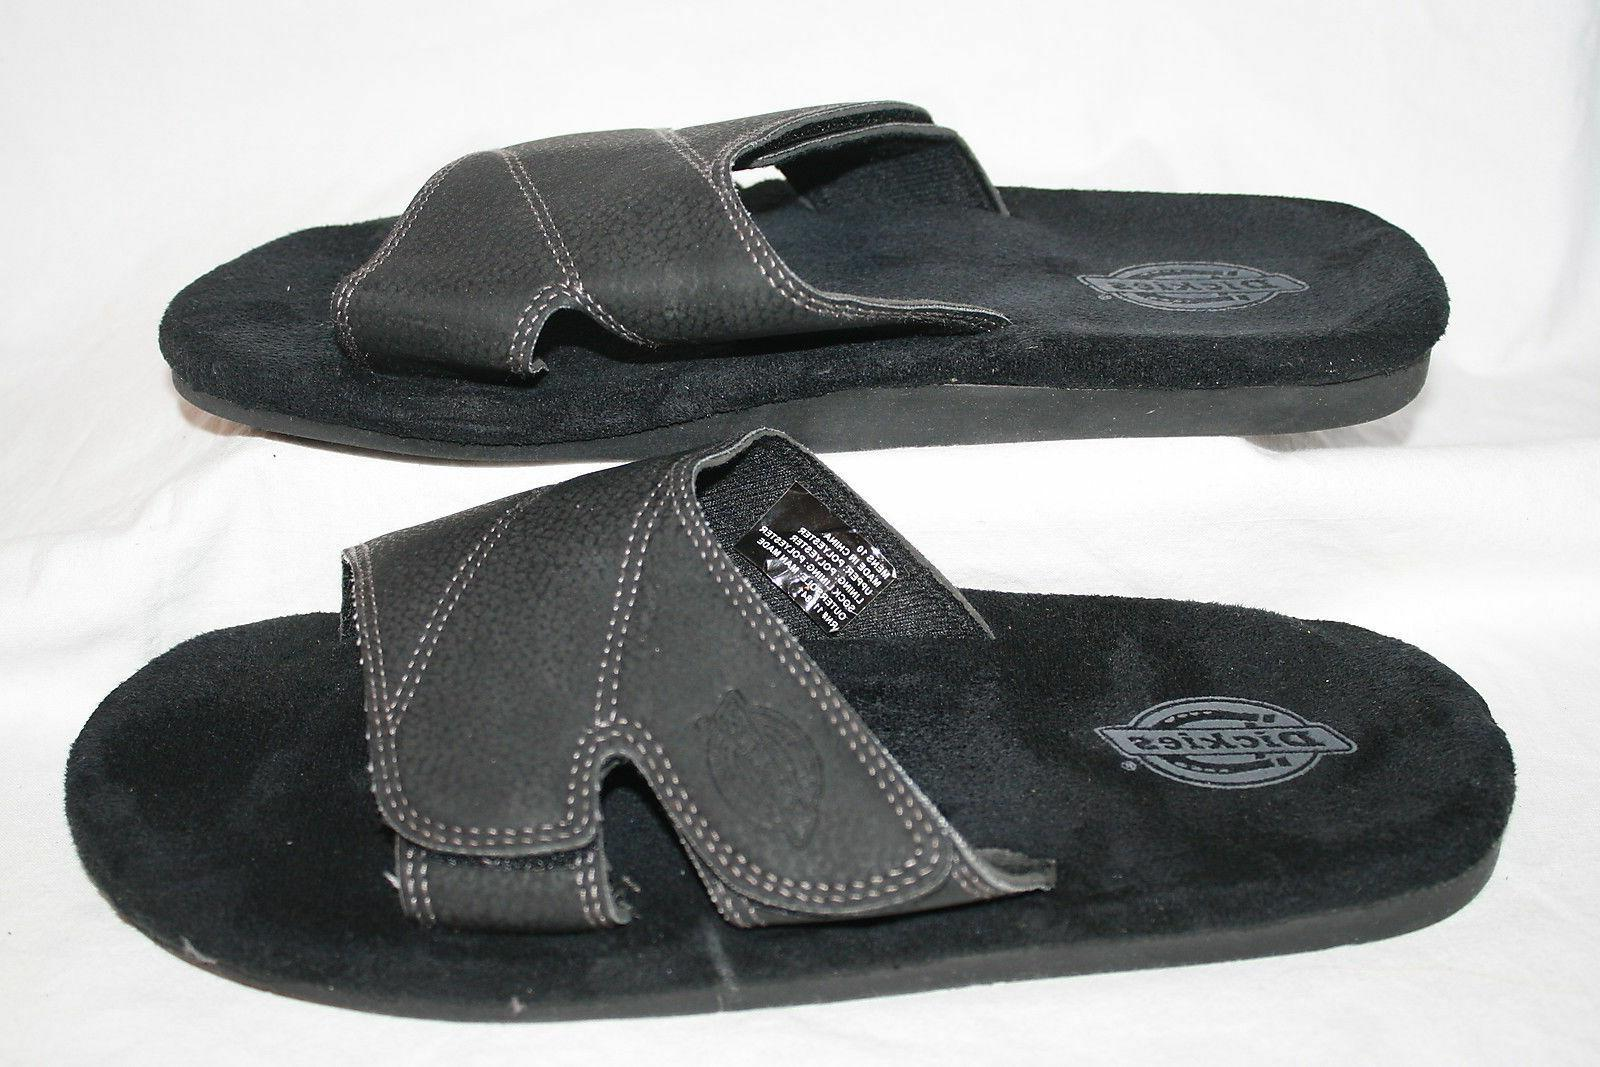 new mens slide sandals style 119841 black